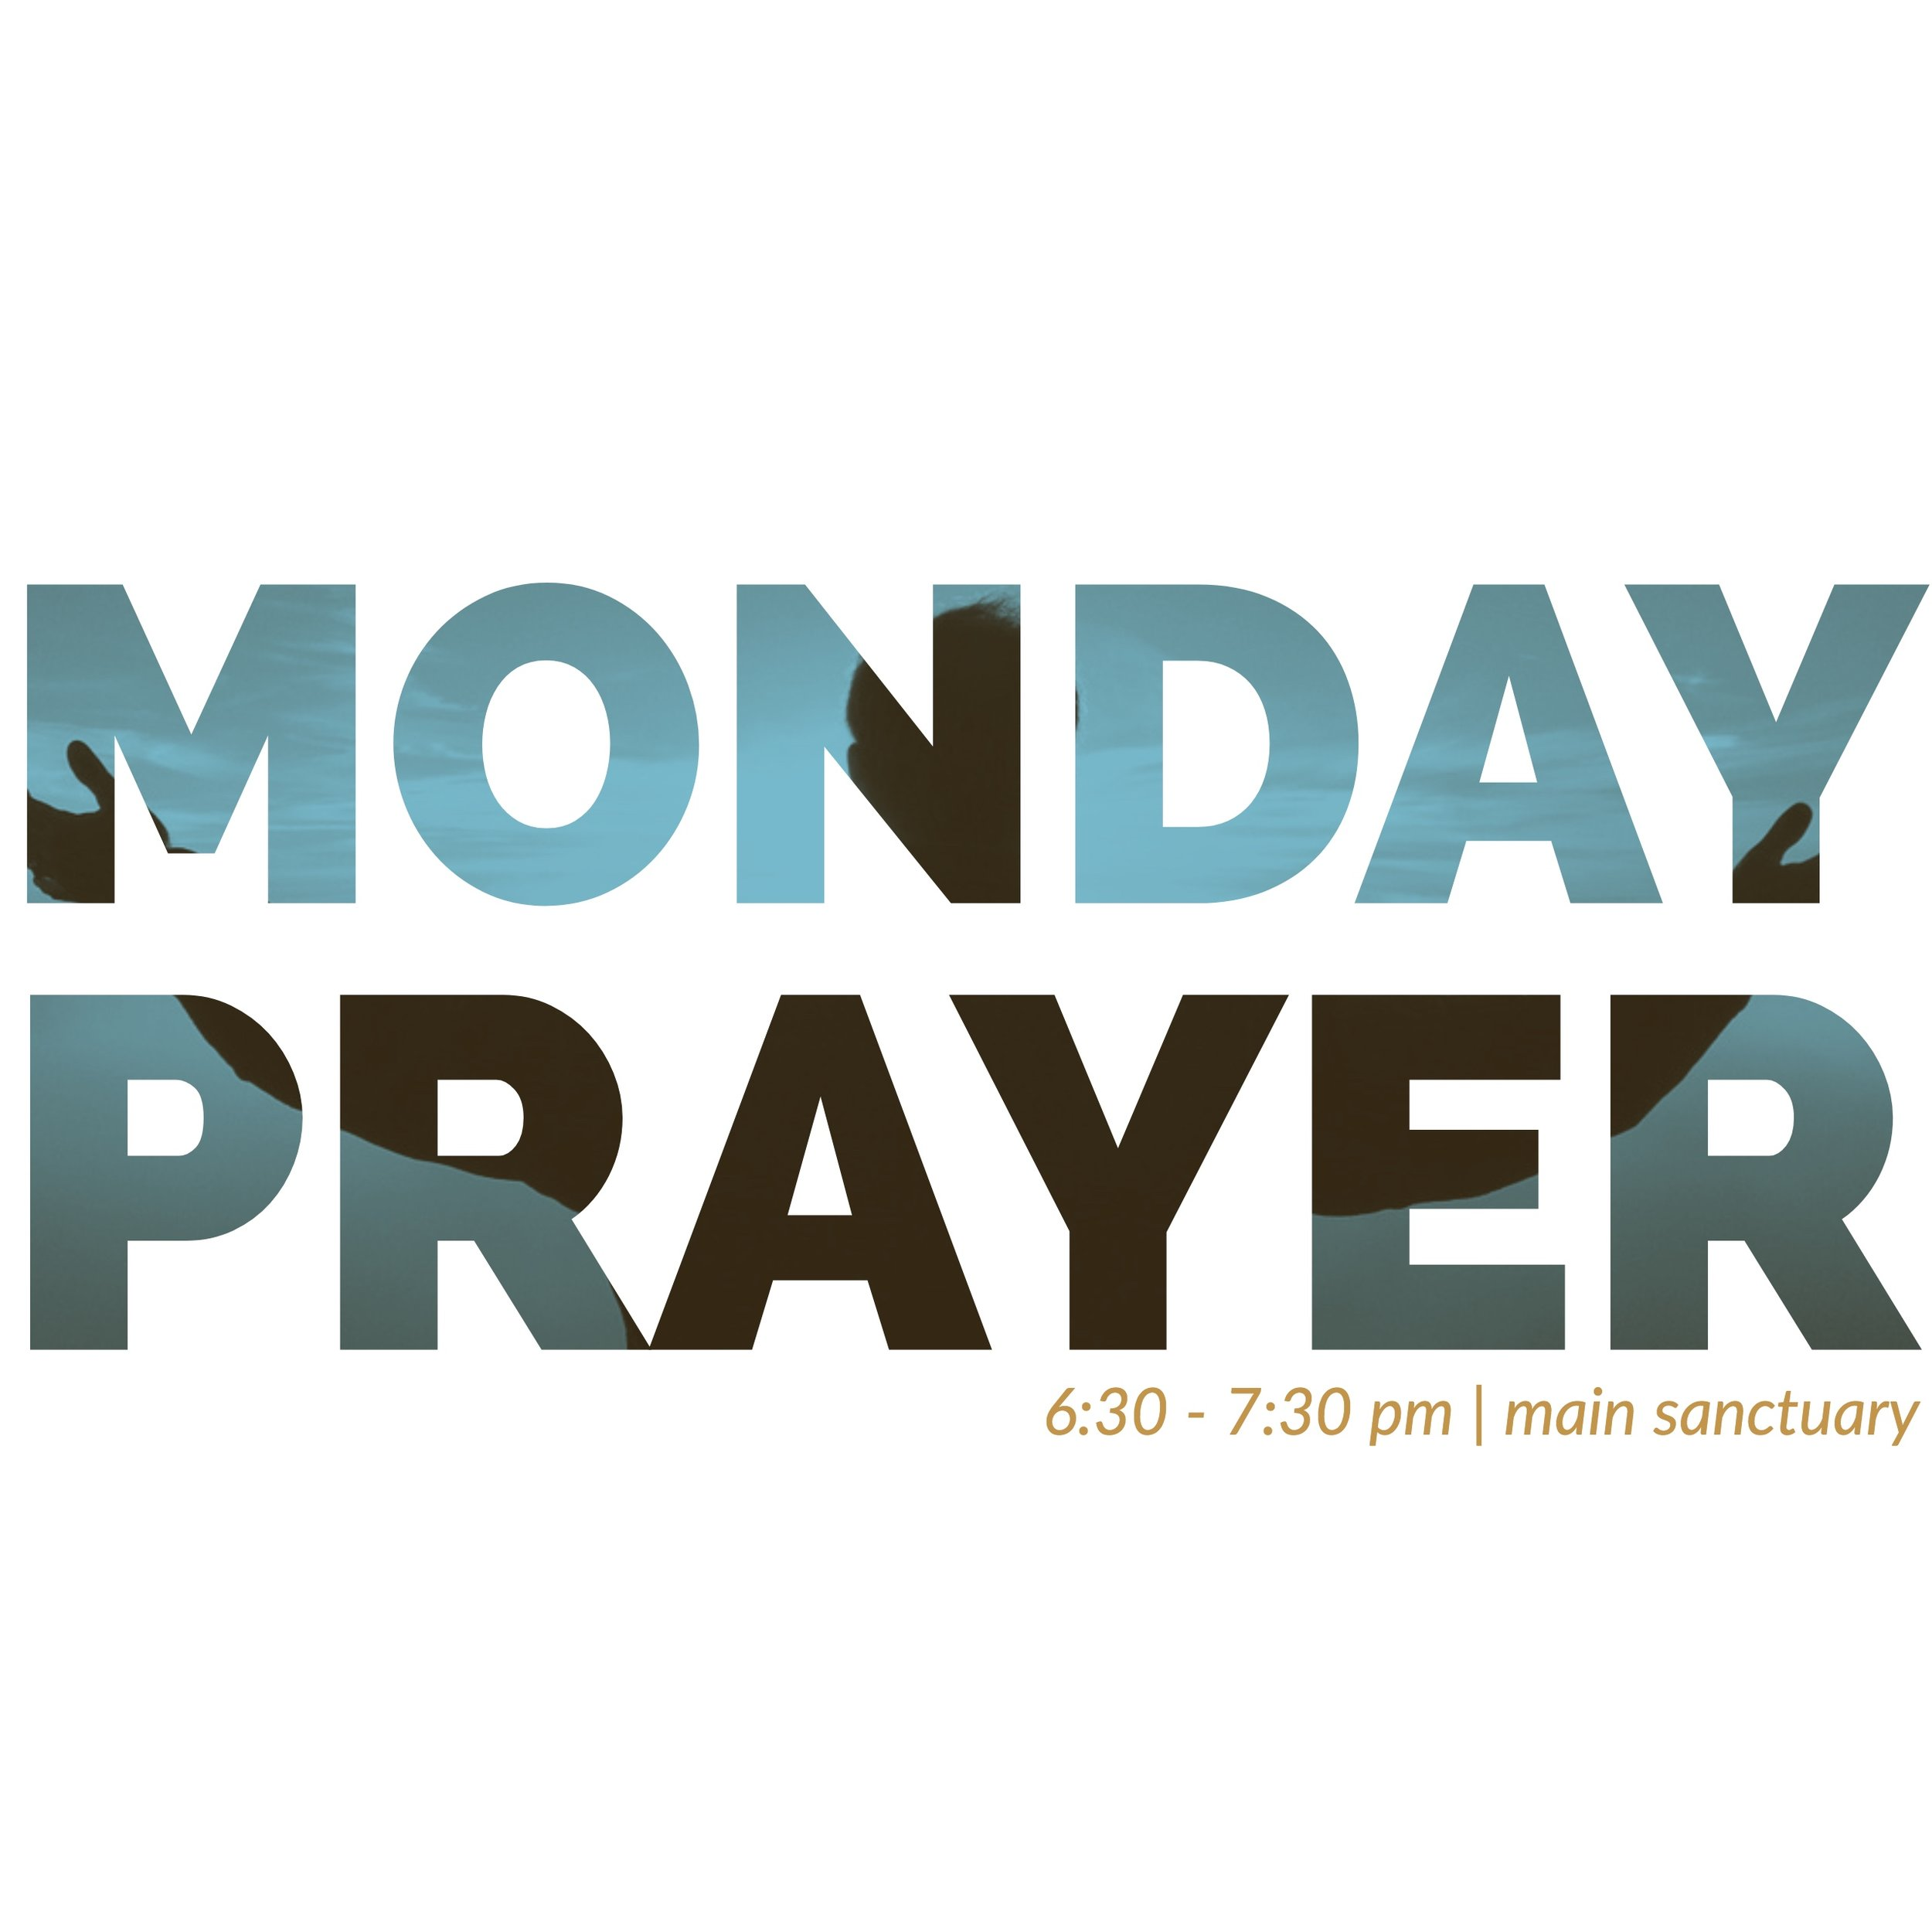 Monday Night Prayer Service at The Anchor Church.  Join us in corporate prayer every week in the main sanctuary from 6:30 to 7:30pm.